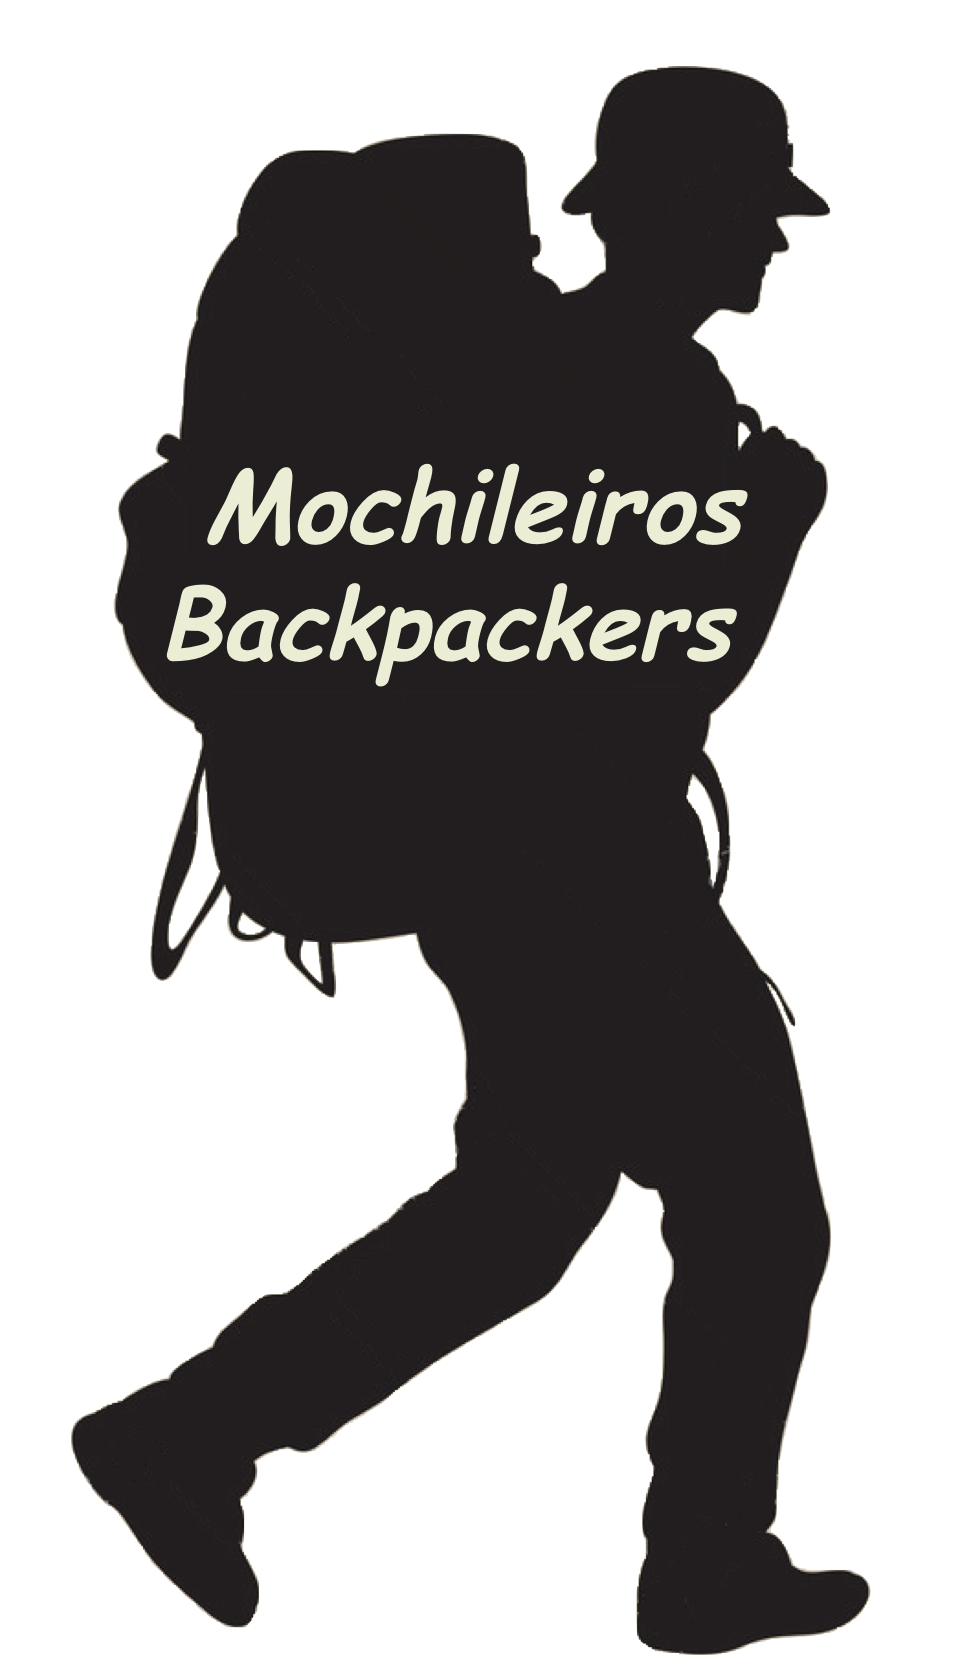 logo mochileiro backpacker